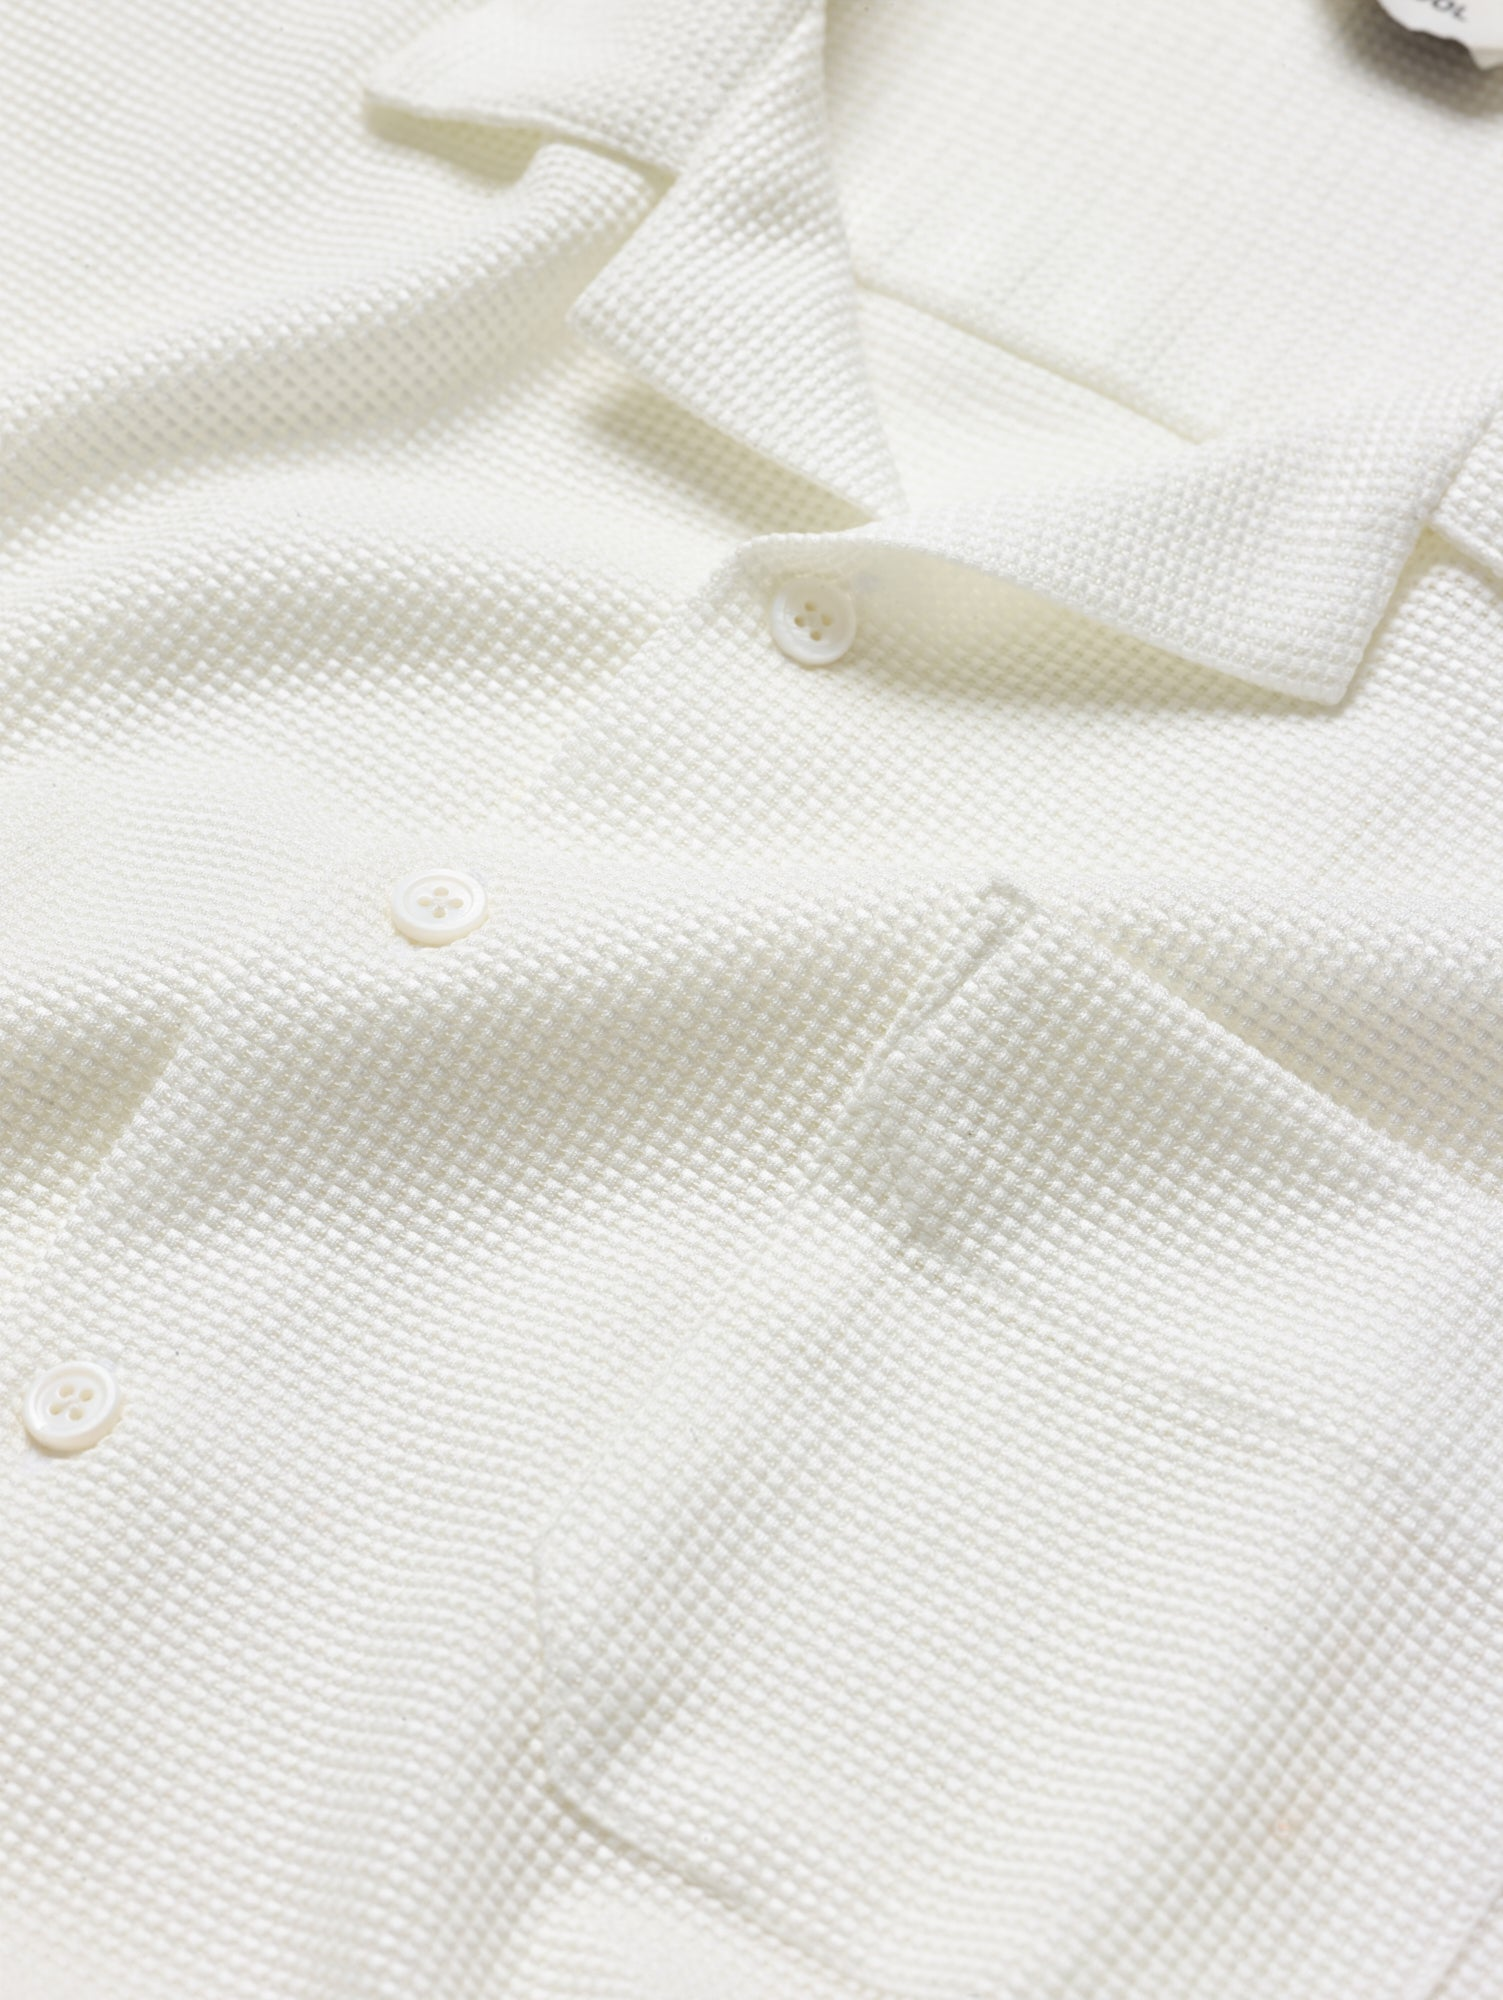 A Knit Lounge Shirt in Alpine White